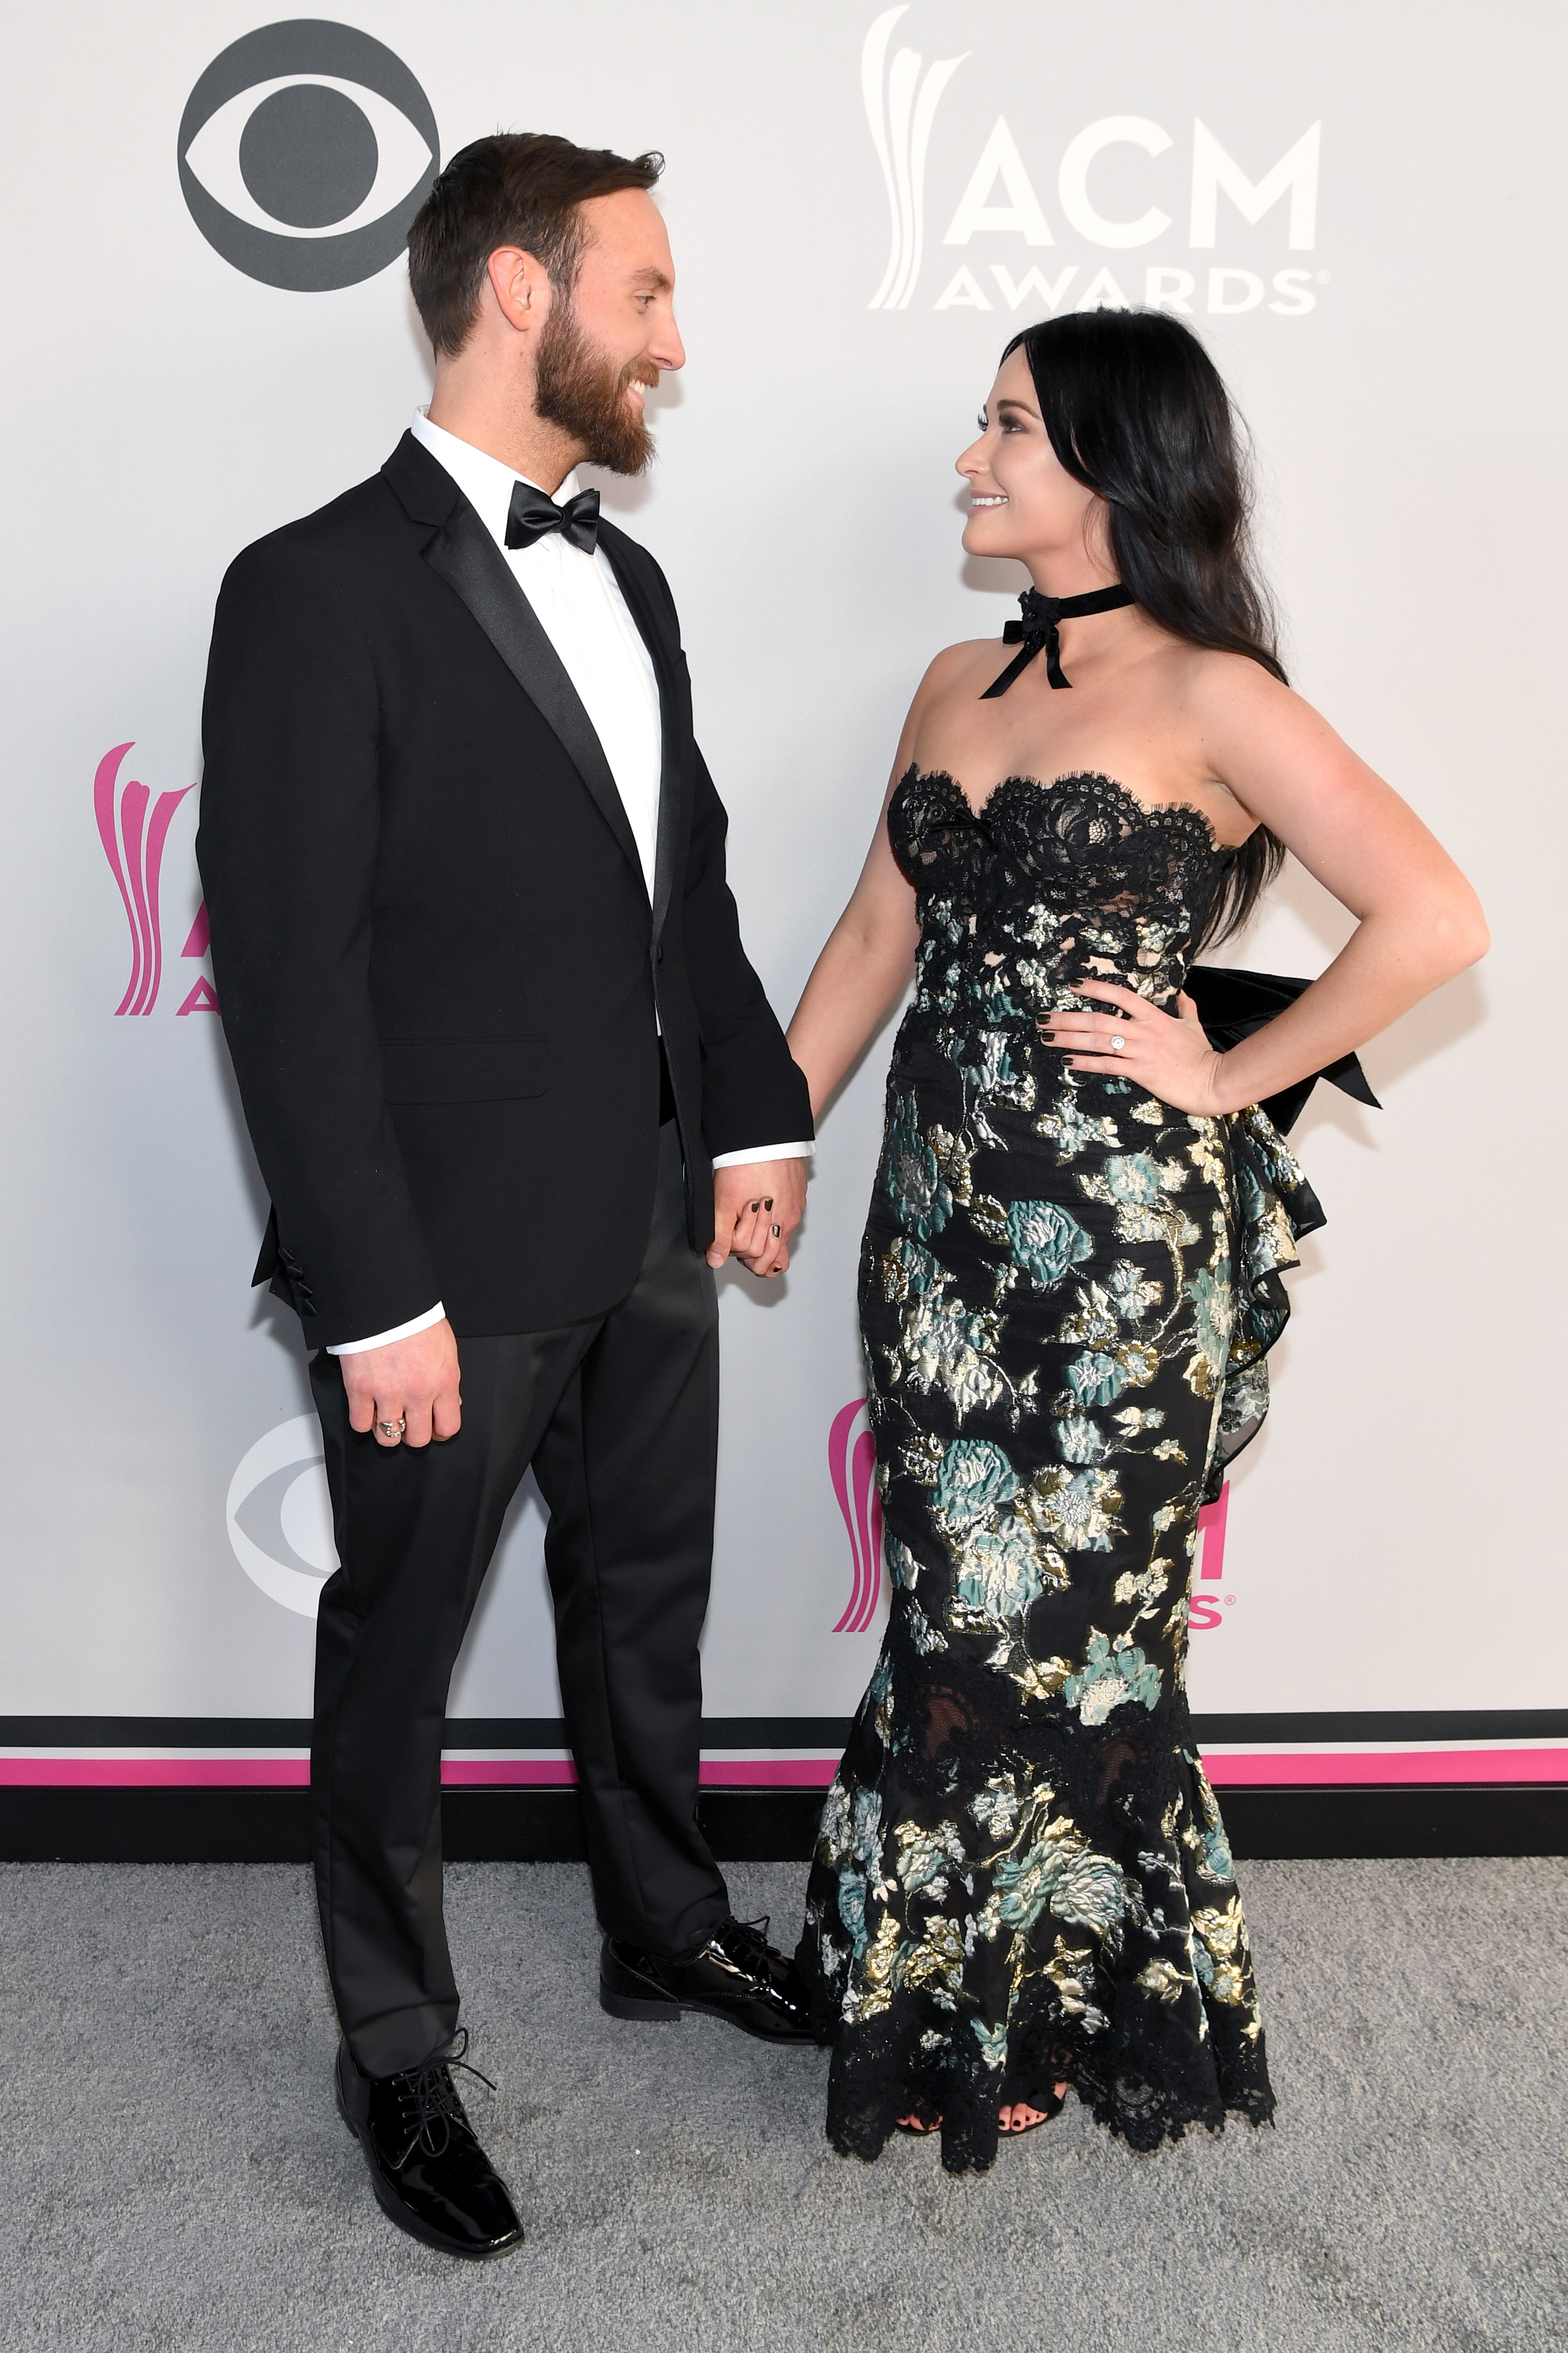 3daef9b048959 Kacey Musgraves & Ruston Kelly - Romance Review | News | MegaCountry